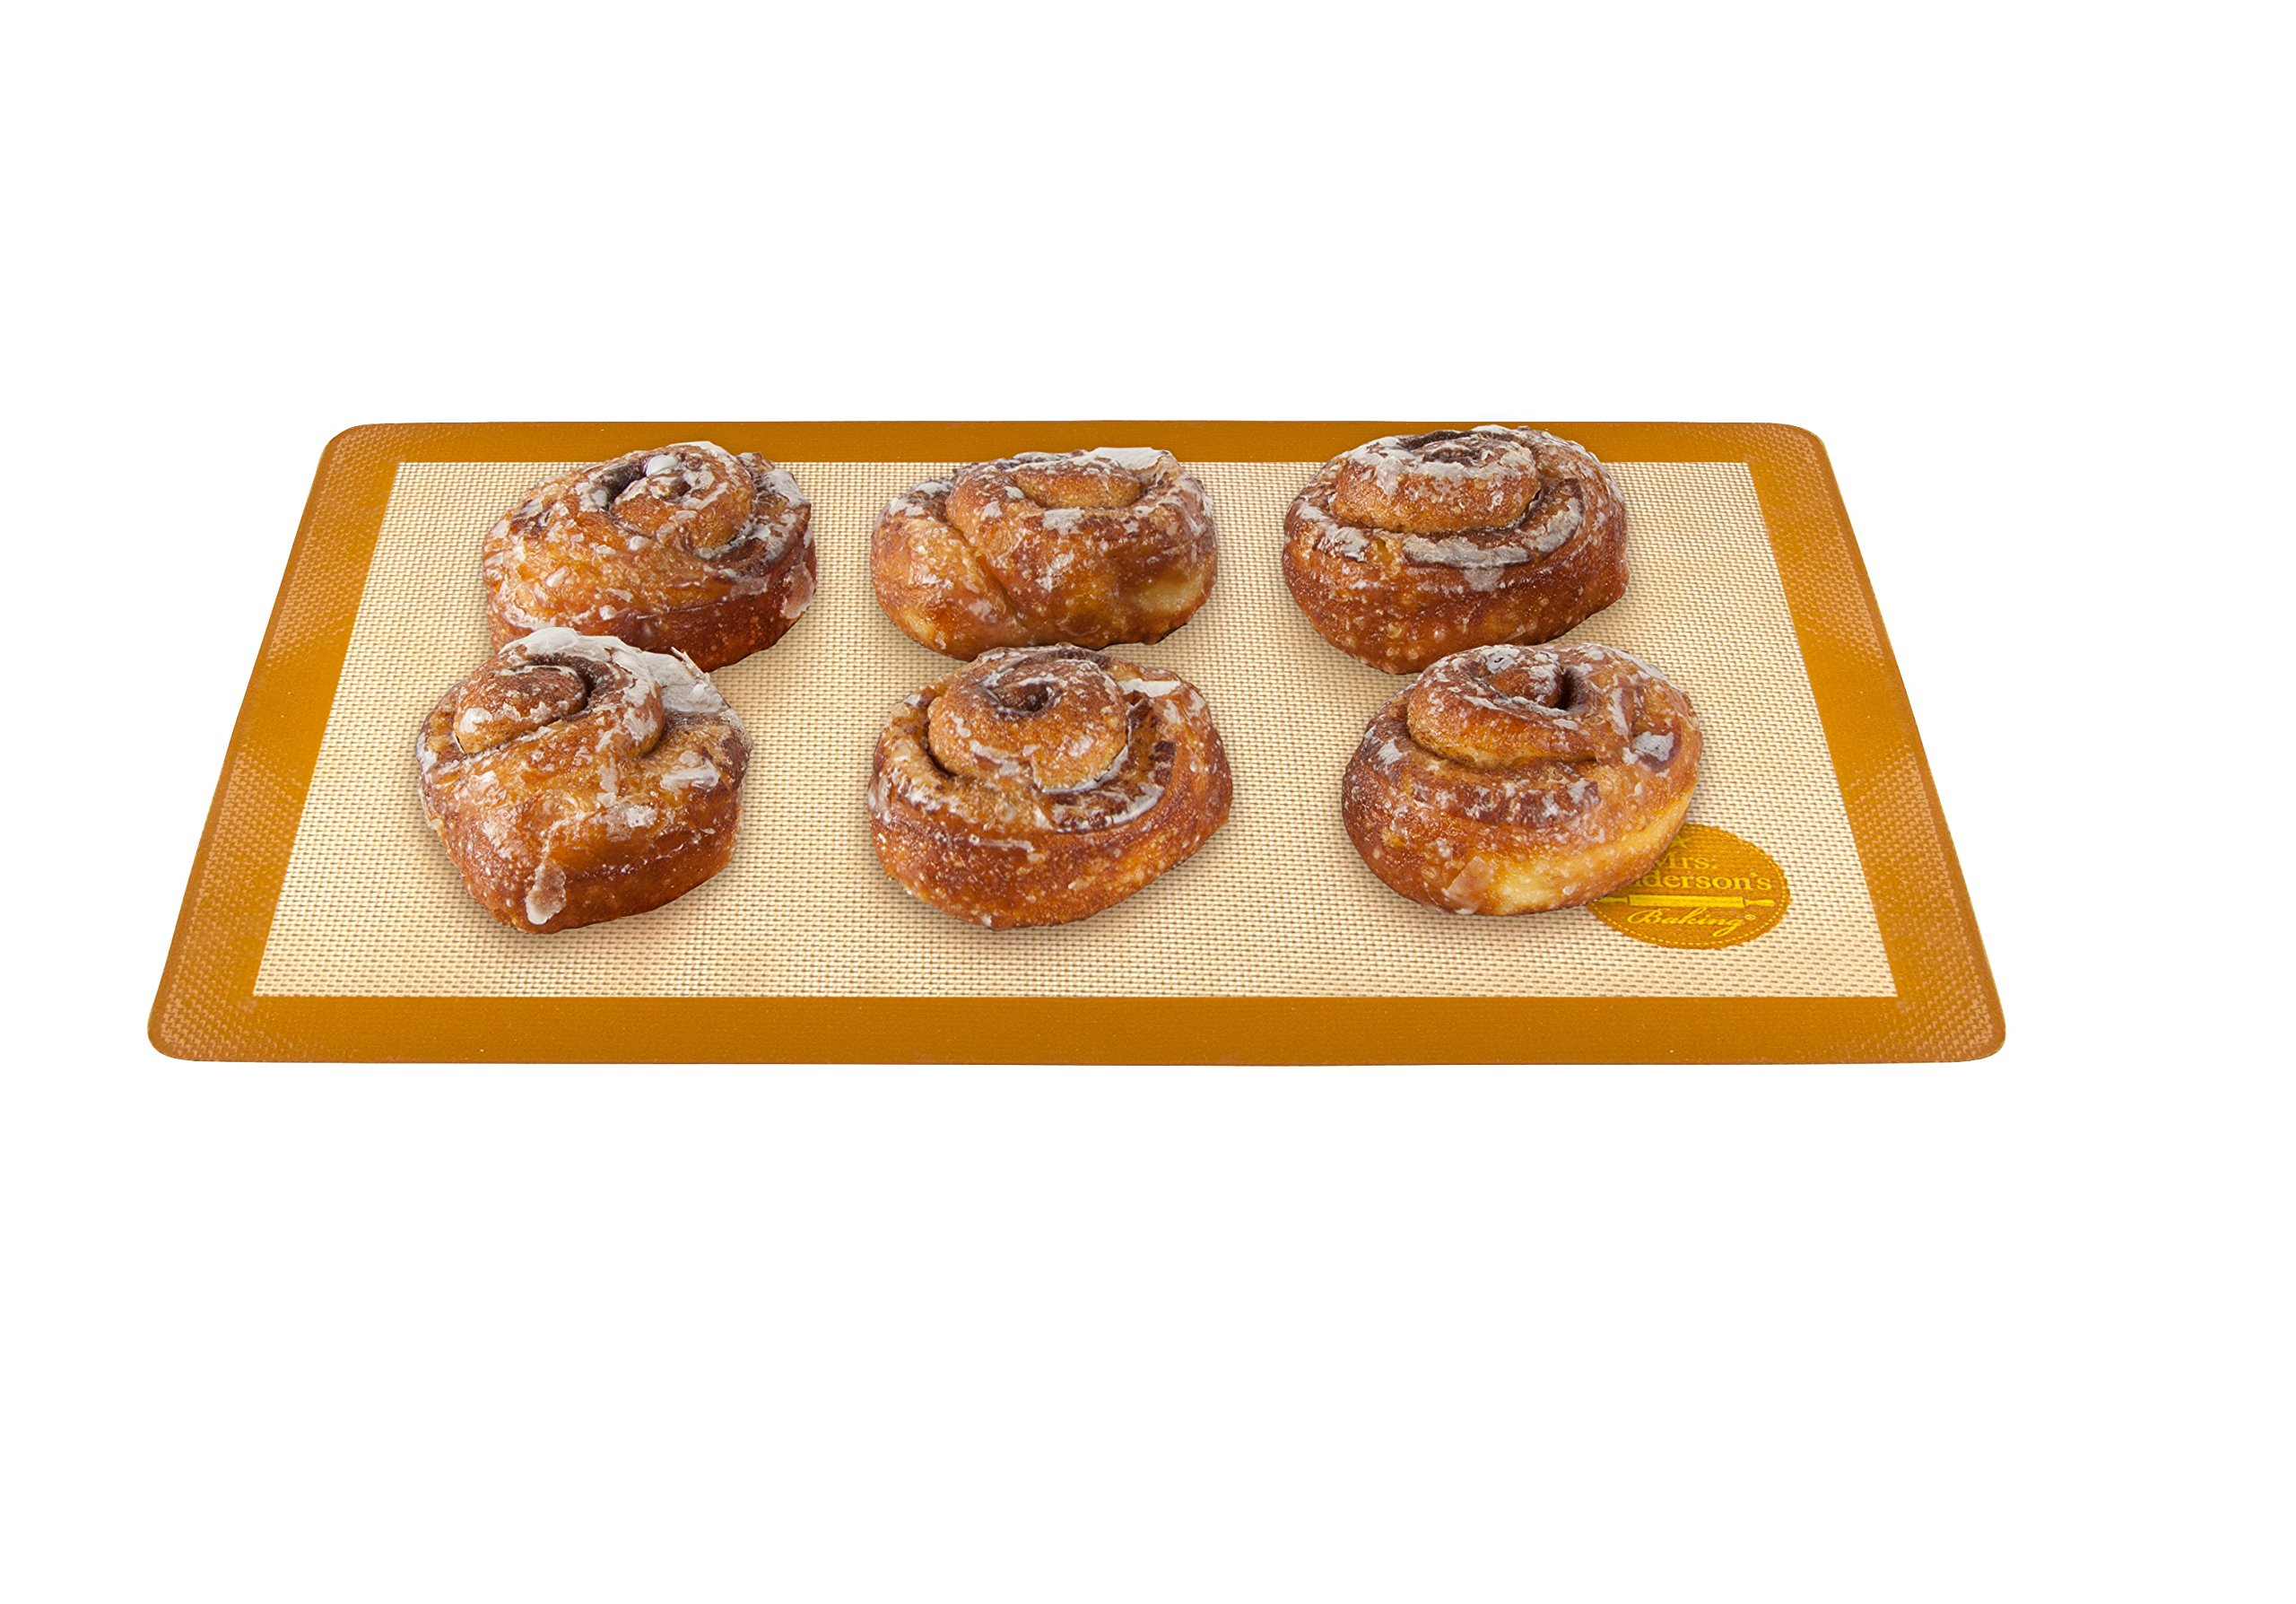 Mrs. Anderson's Baking Non-Stick Silicone Half-Size Baking Mat, 11.625-Inch x 16.5-Inch, Set of 2 by Mrs. Anderson's Baking (Image #5)